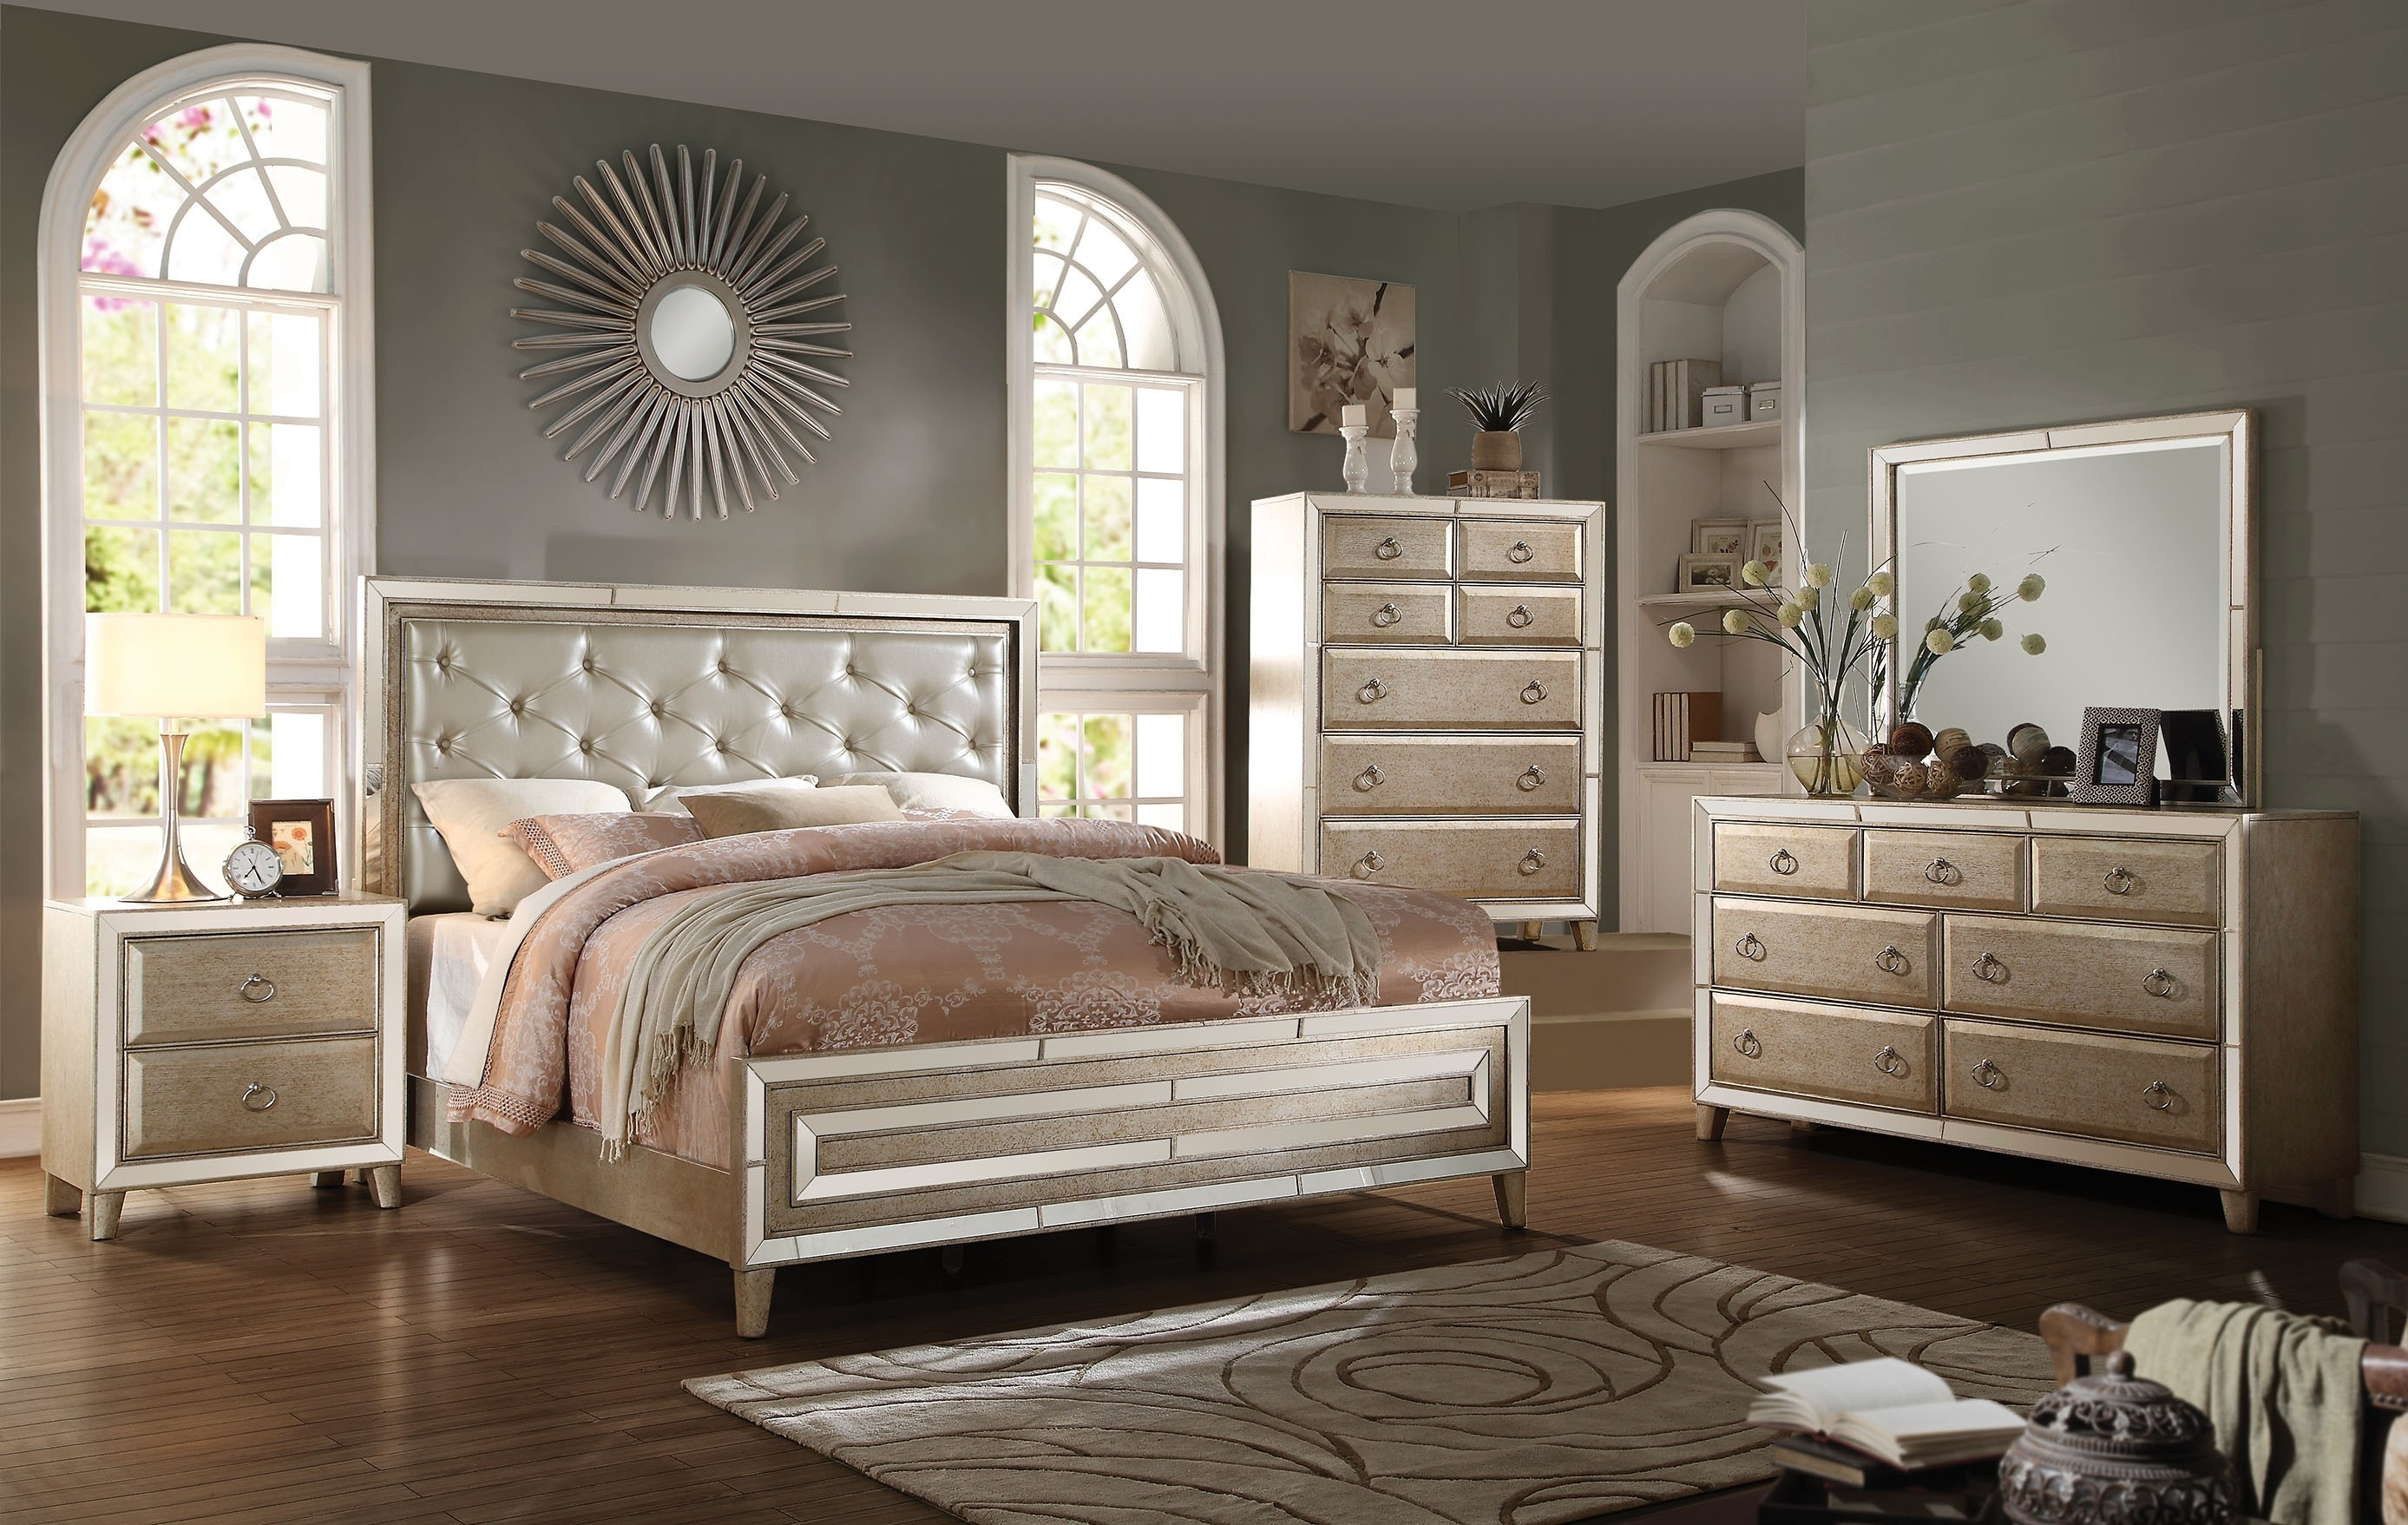 Bedroom Kids Bedroom Sets Under 500 Unique Queen Size ...